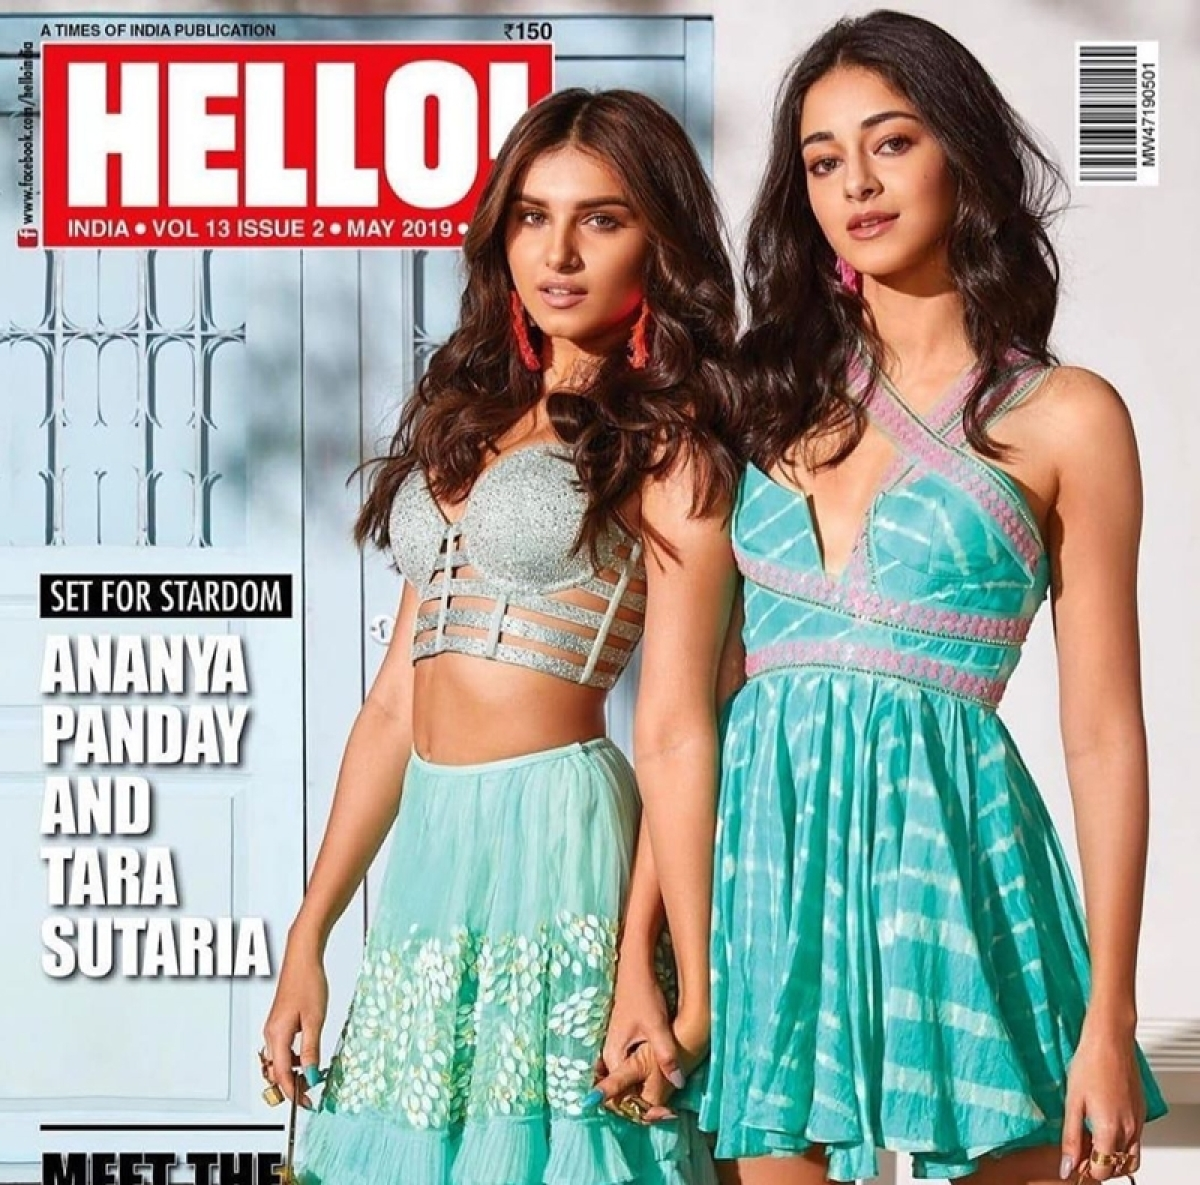 Ananya and Tara shine in latest Hello! Magazine cover